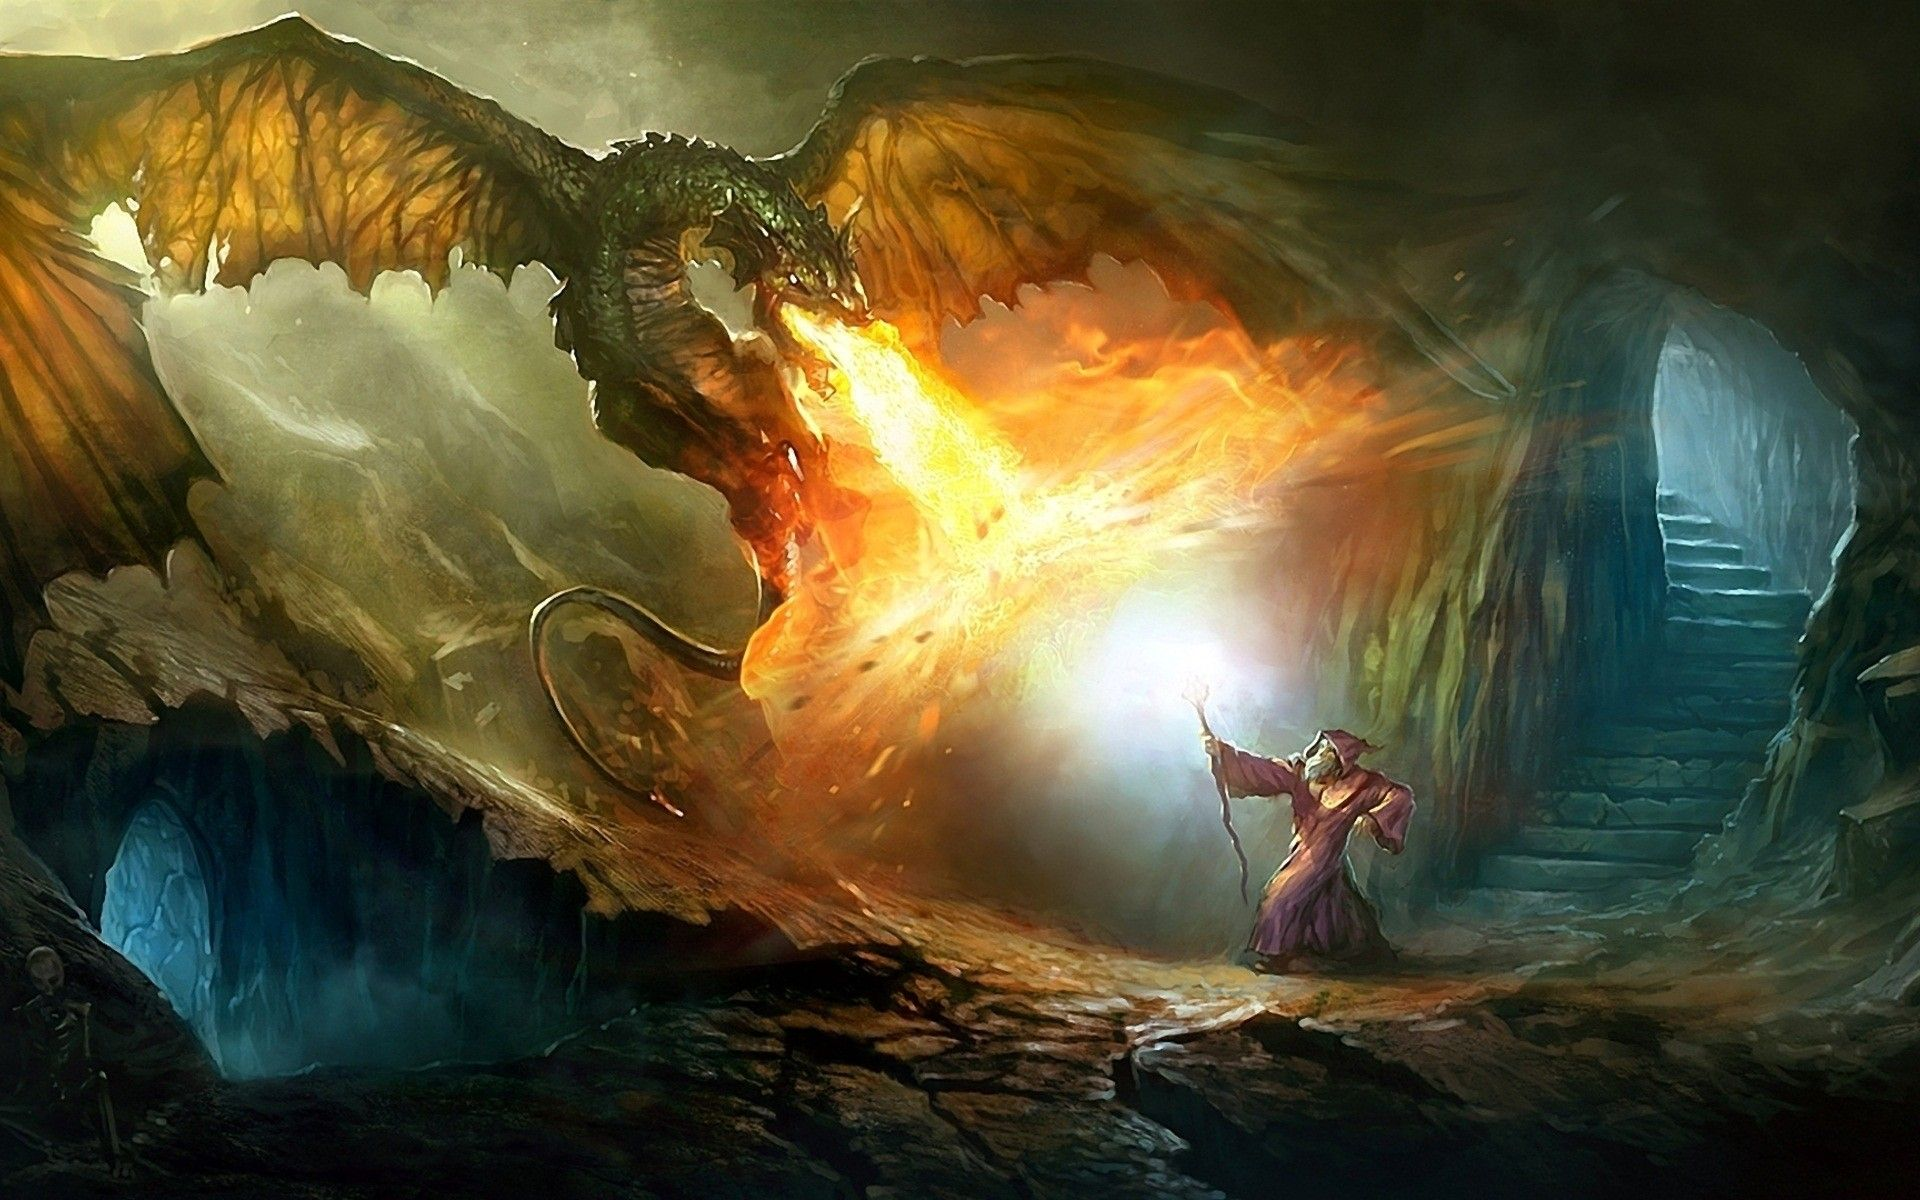 Wizards And Dragons Wallpapers Top Free Wizards And Dragons